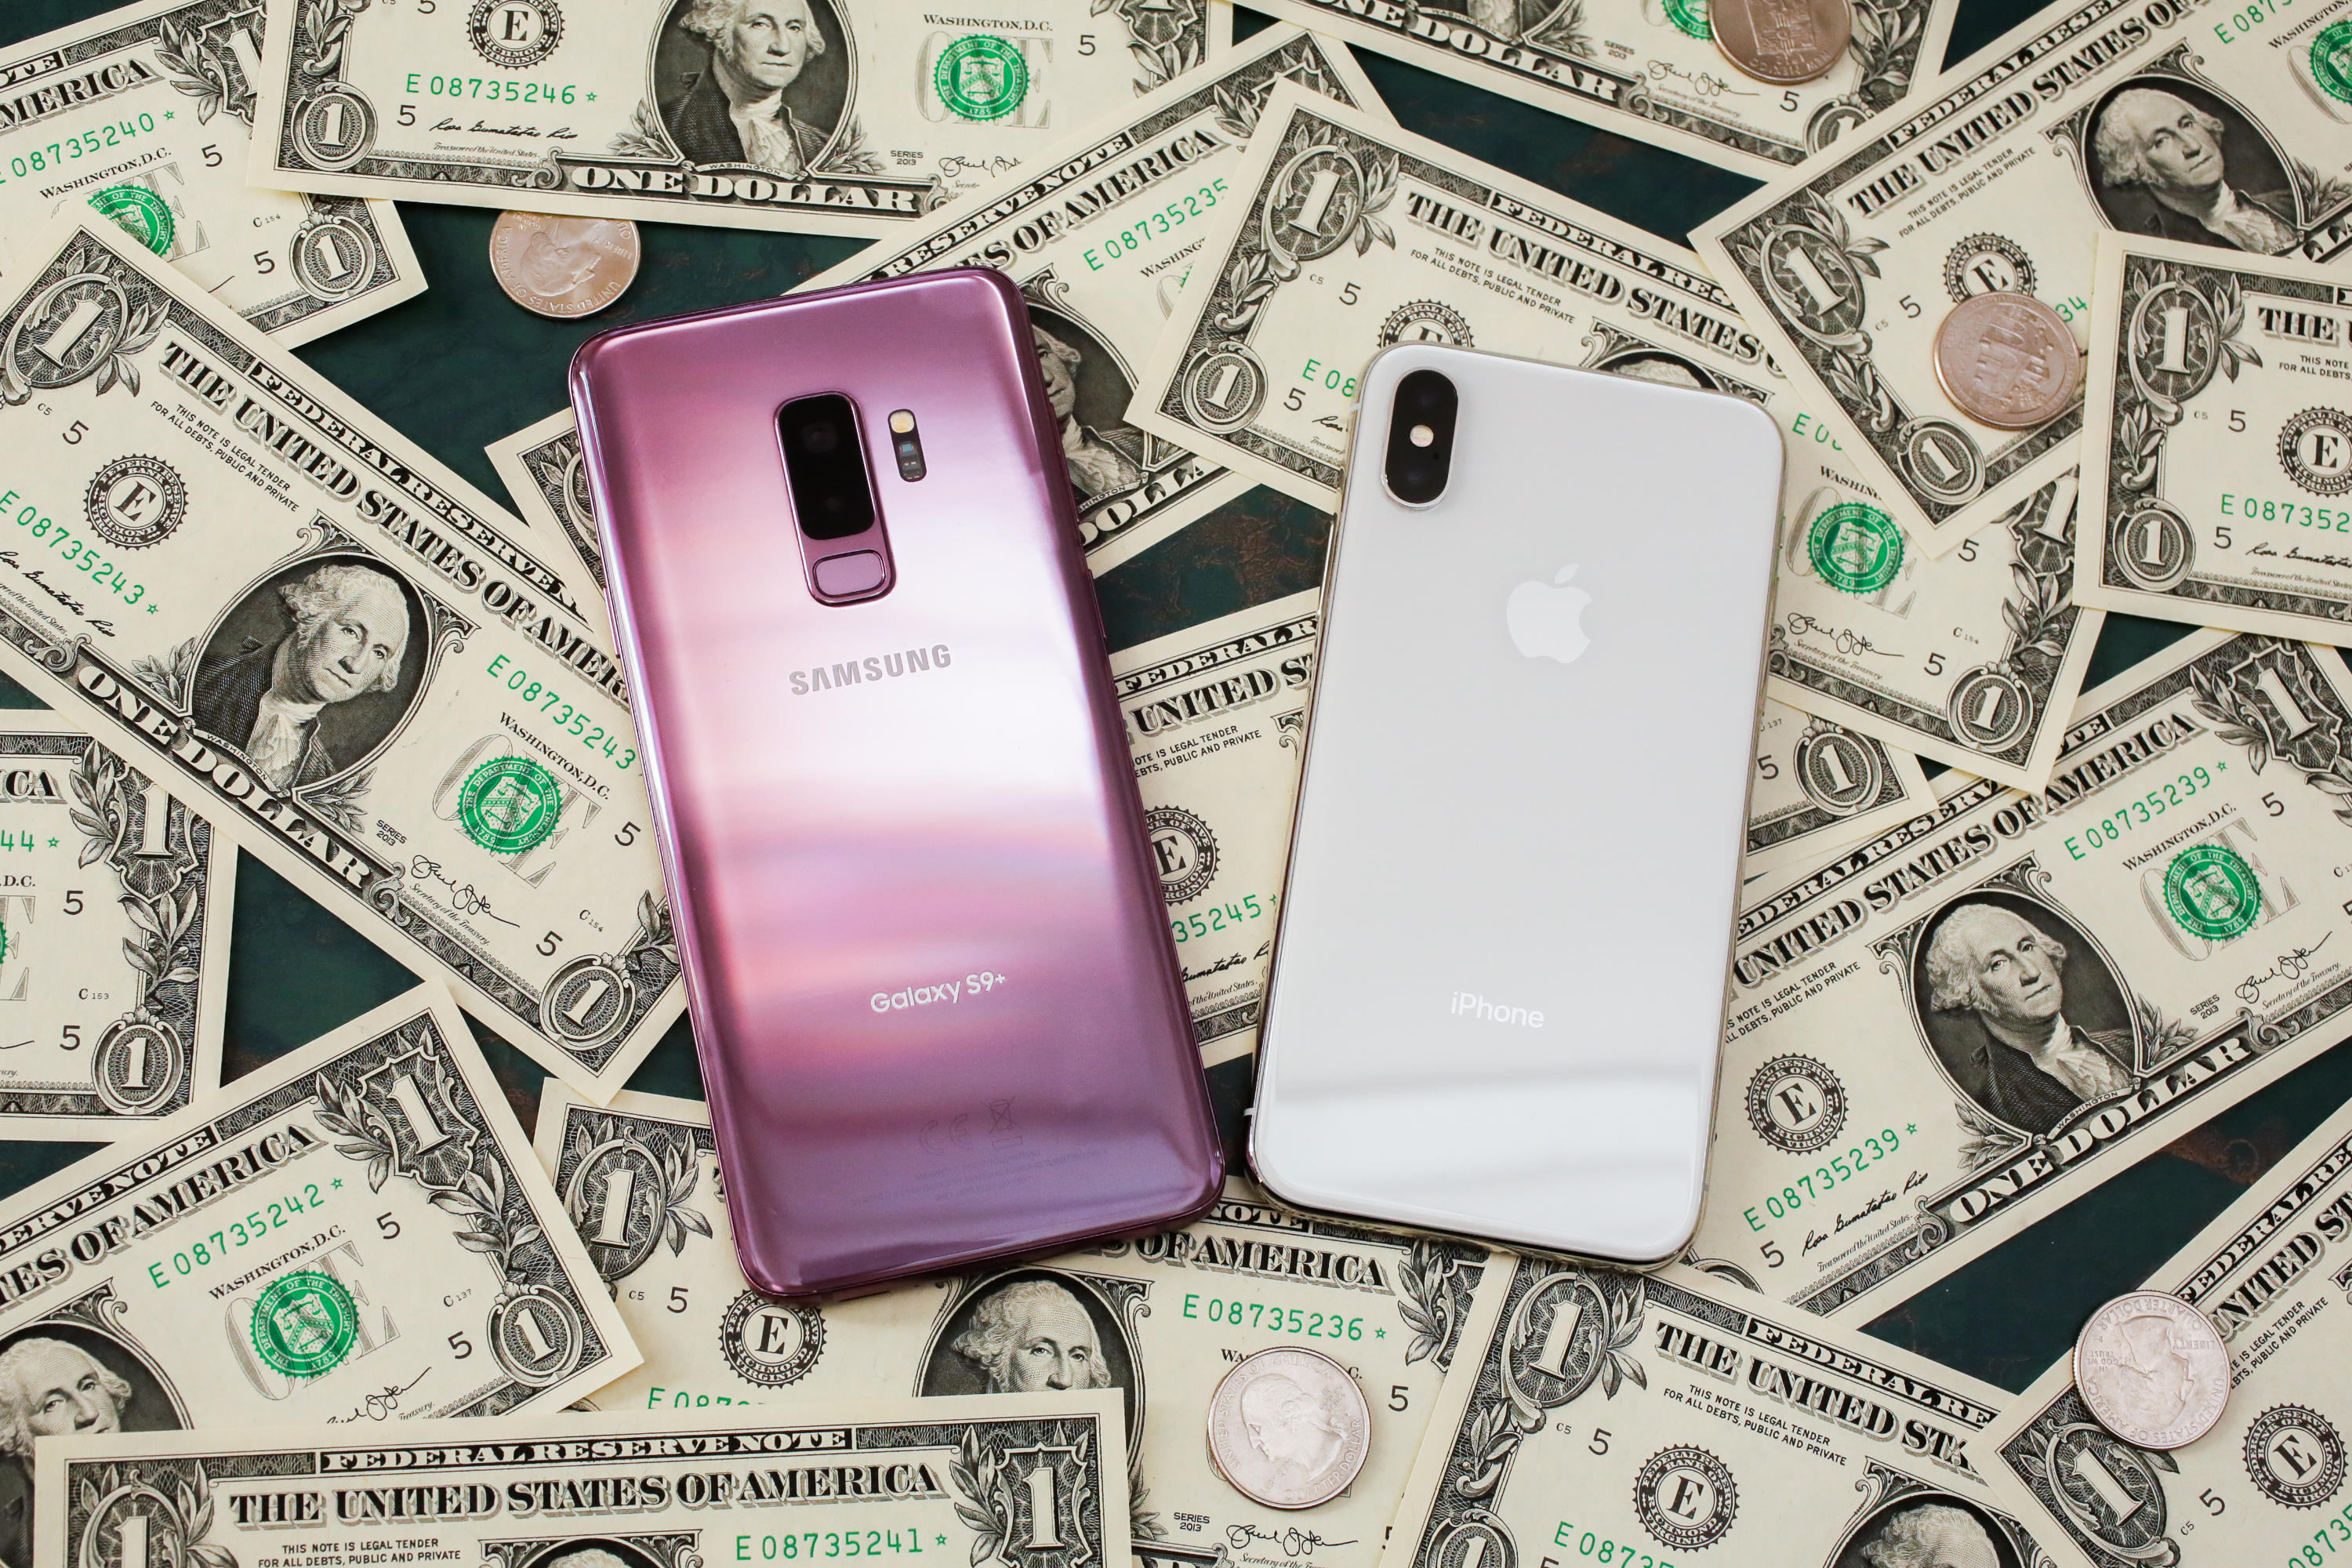 04-cash-money-iphone-samsung-galaxy